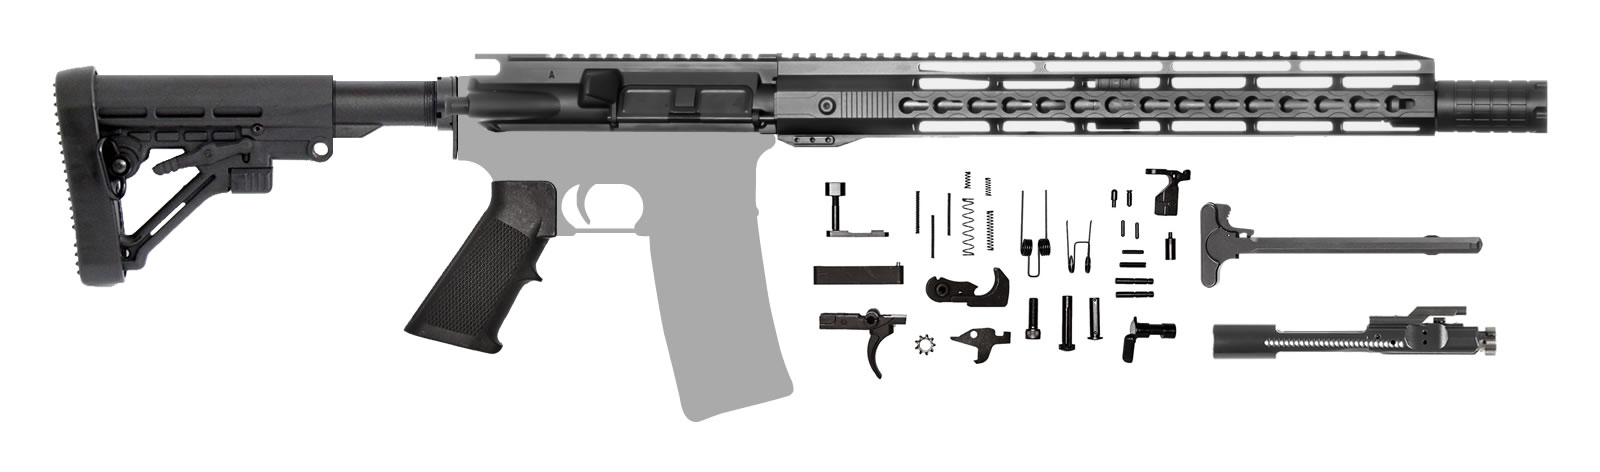 AR-15 Rifle Kit 14.5